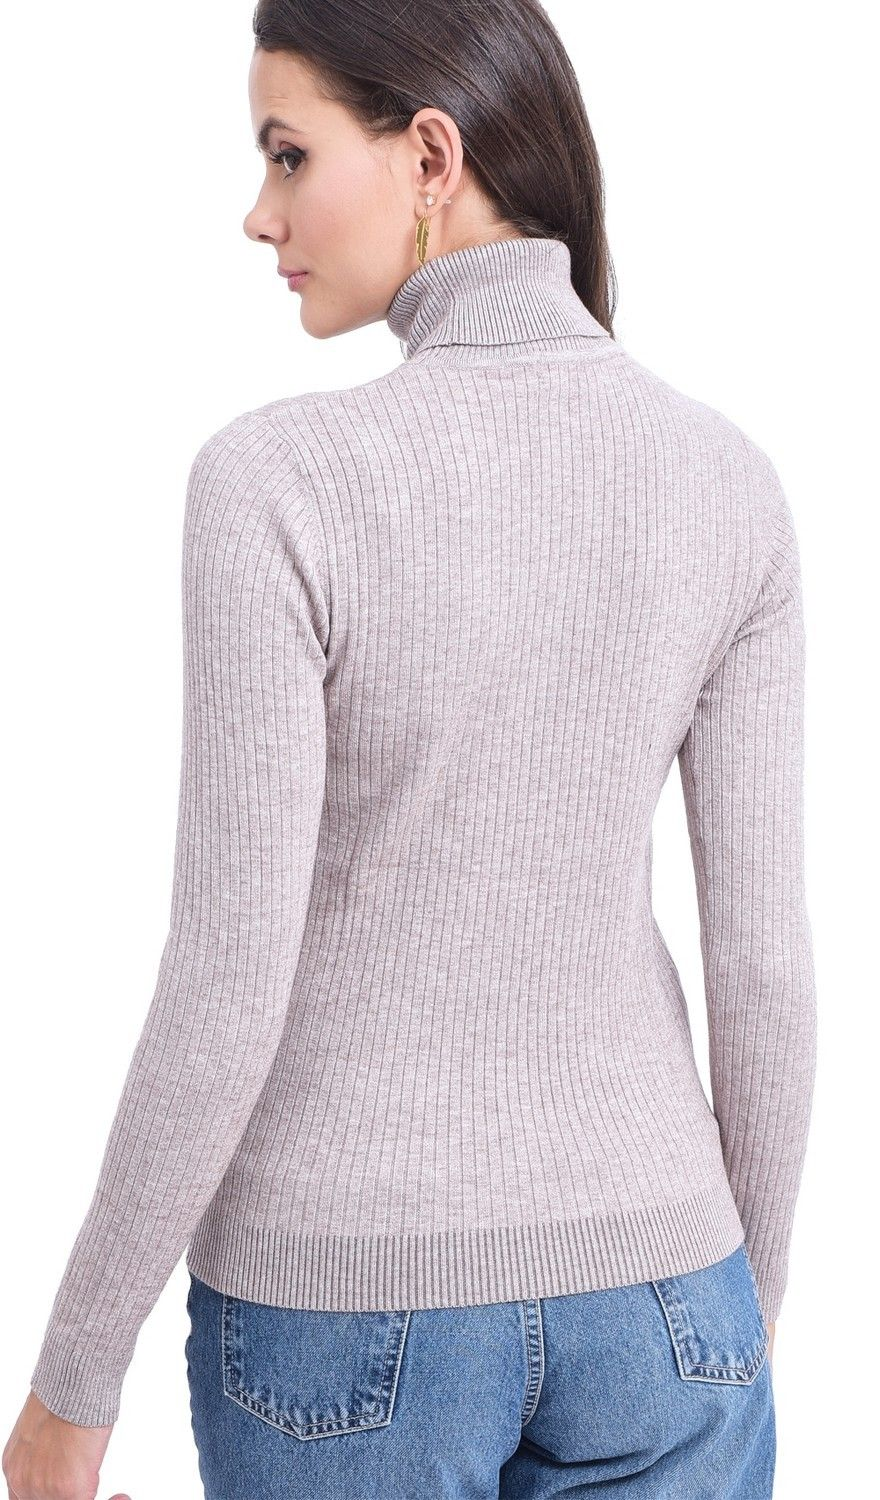 Assuili Roll Neck Long Sleeve Ribbed Sweater in Beige